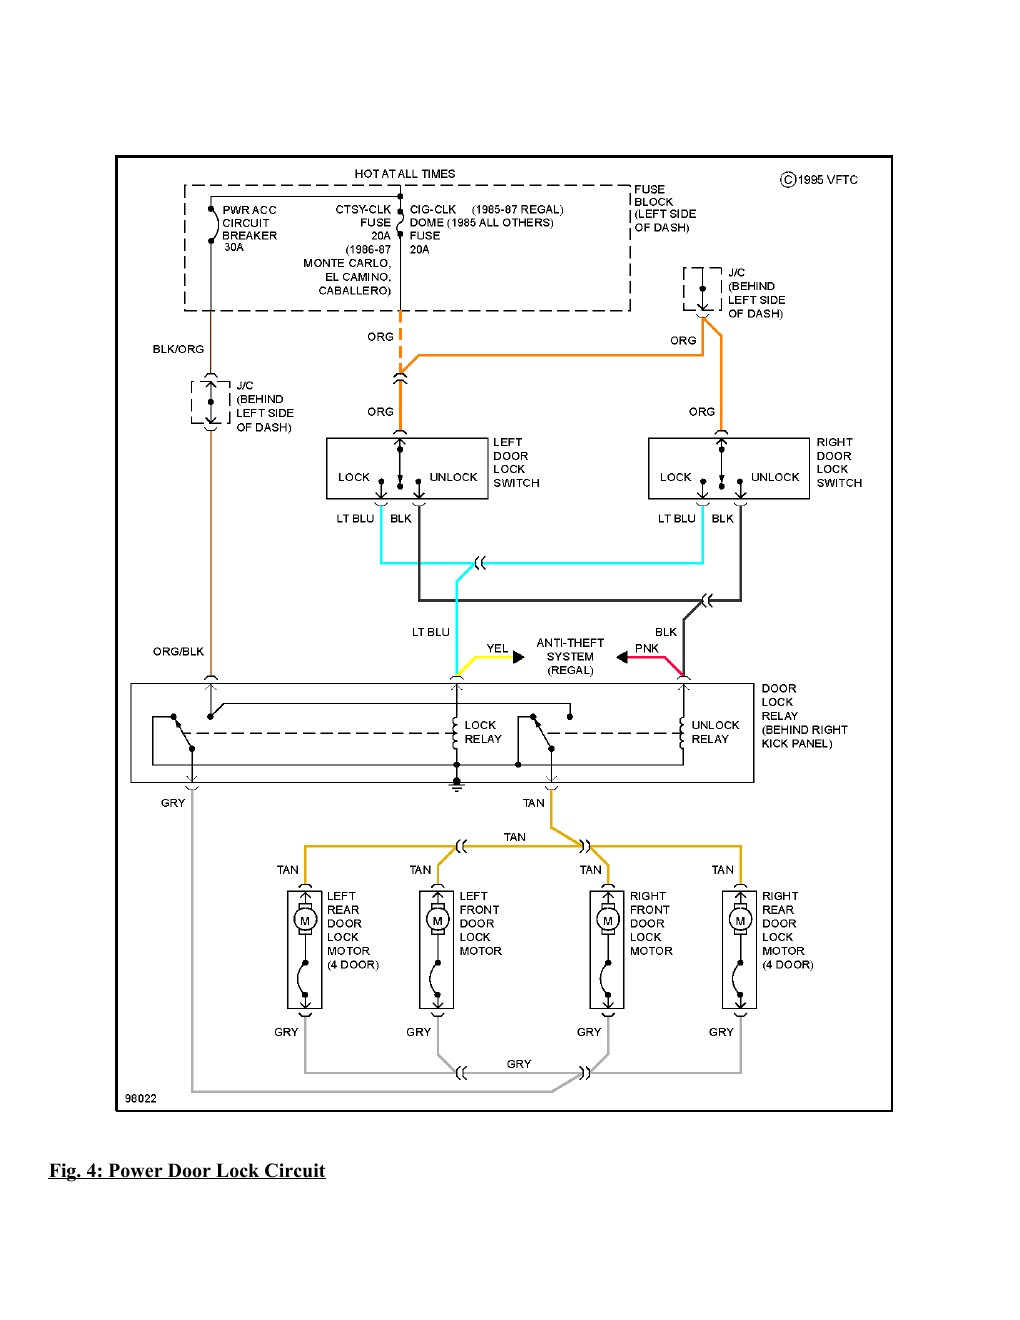 2004 Monte Carlo Coolant System Diagram Wiring Schematic Wiring Diagram View A View A Zaafran It